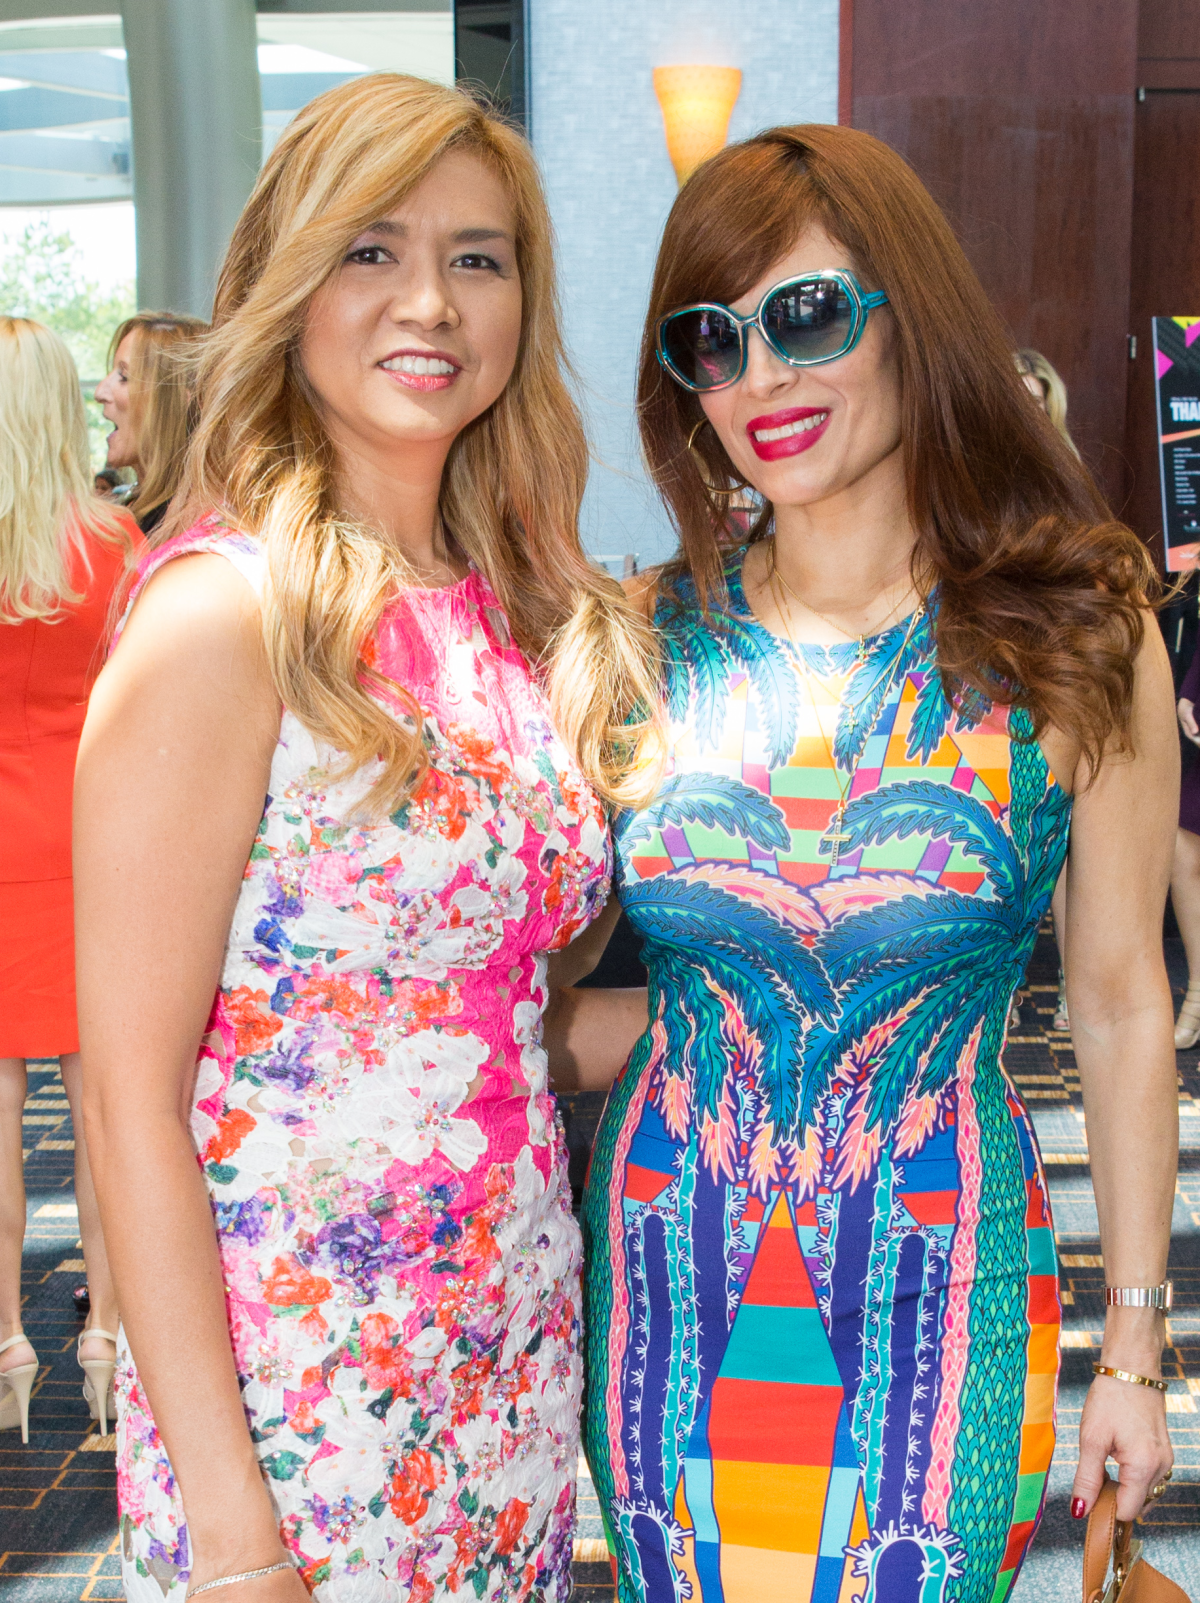 Houston, Woman's Hospital of Texas Labor Day Luncheon, August 2015, Peta-gay Ledbetter, Karina Barbieri